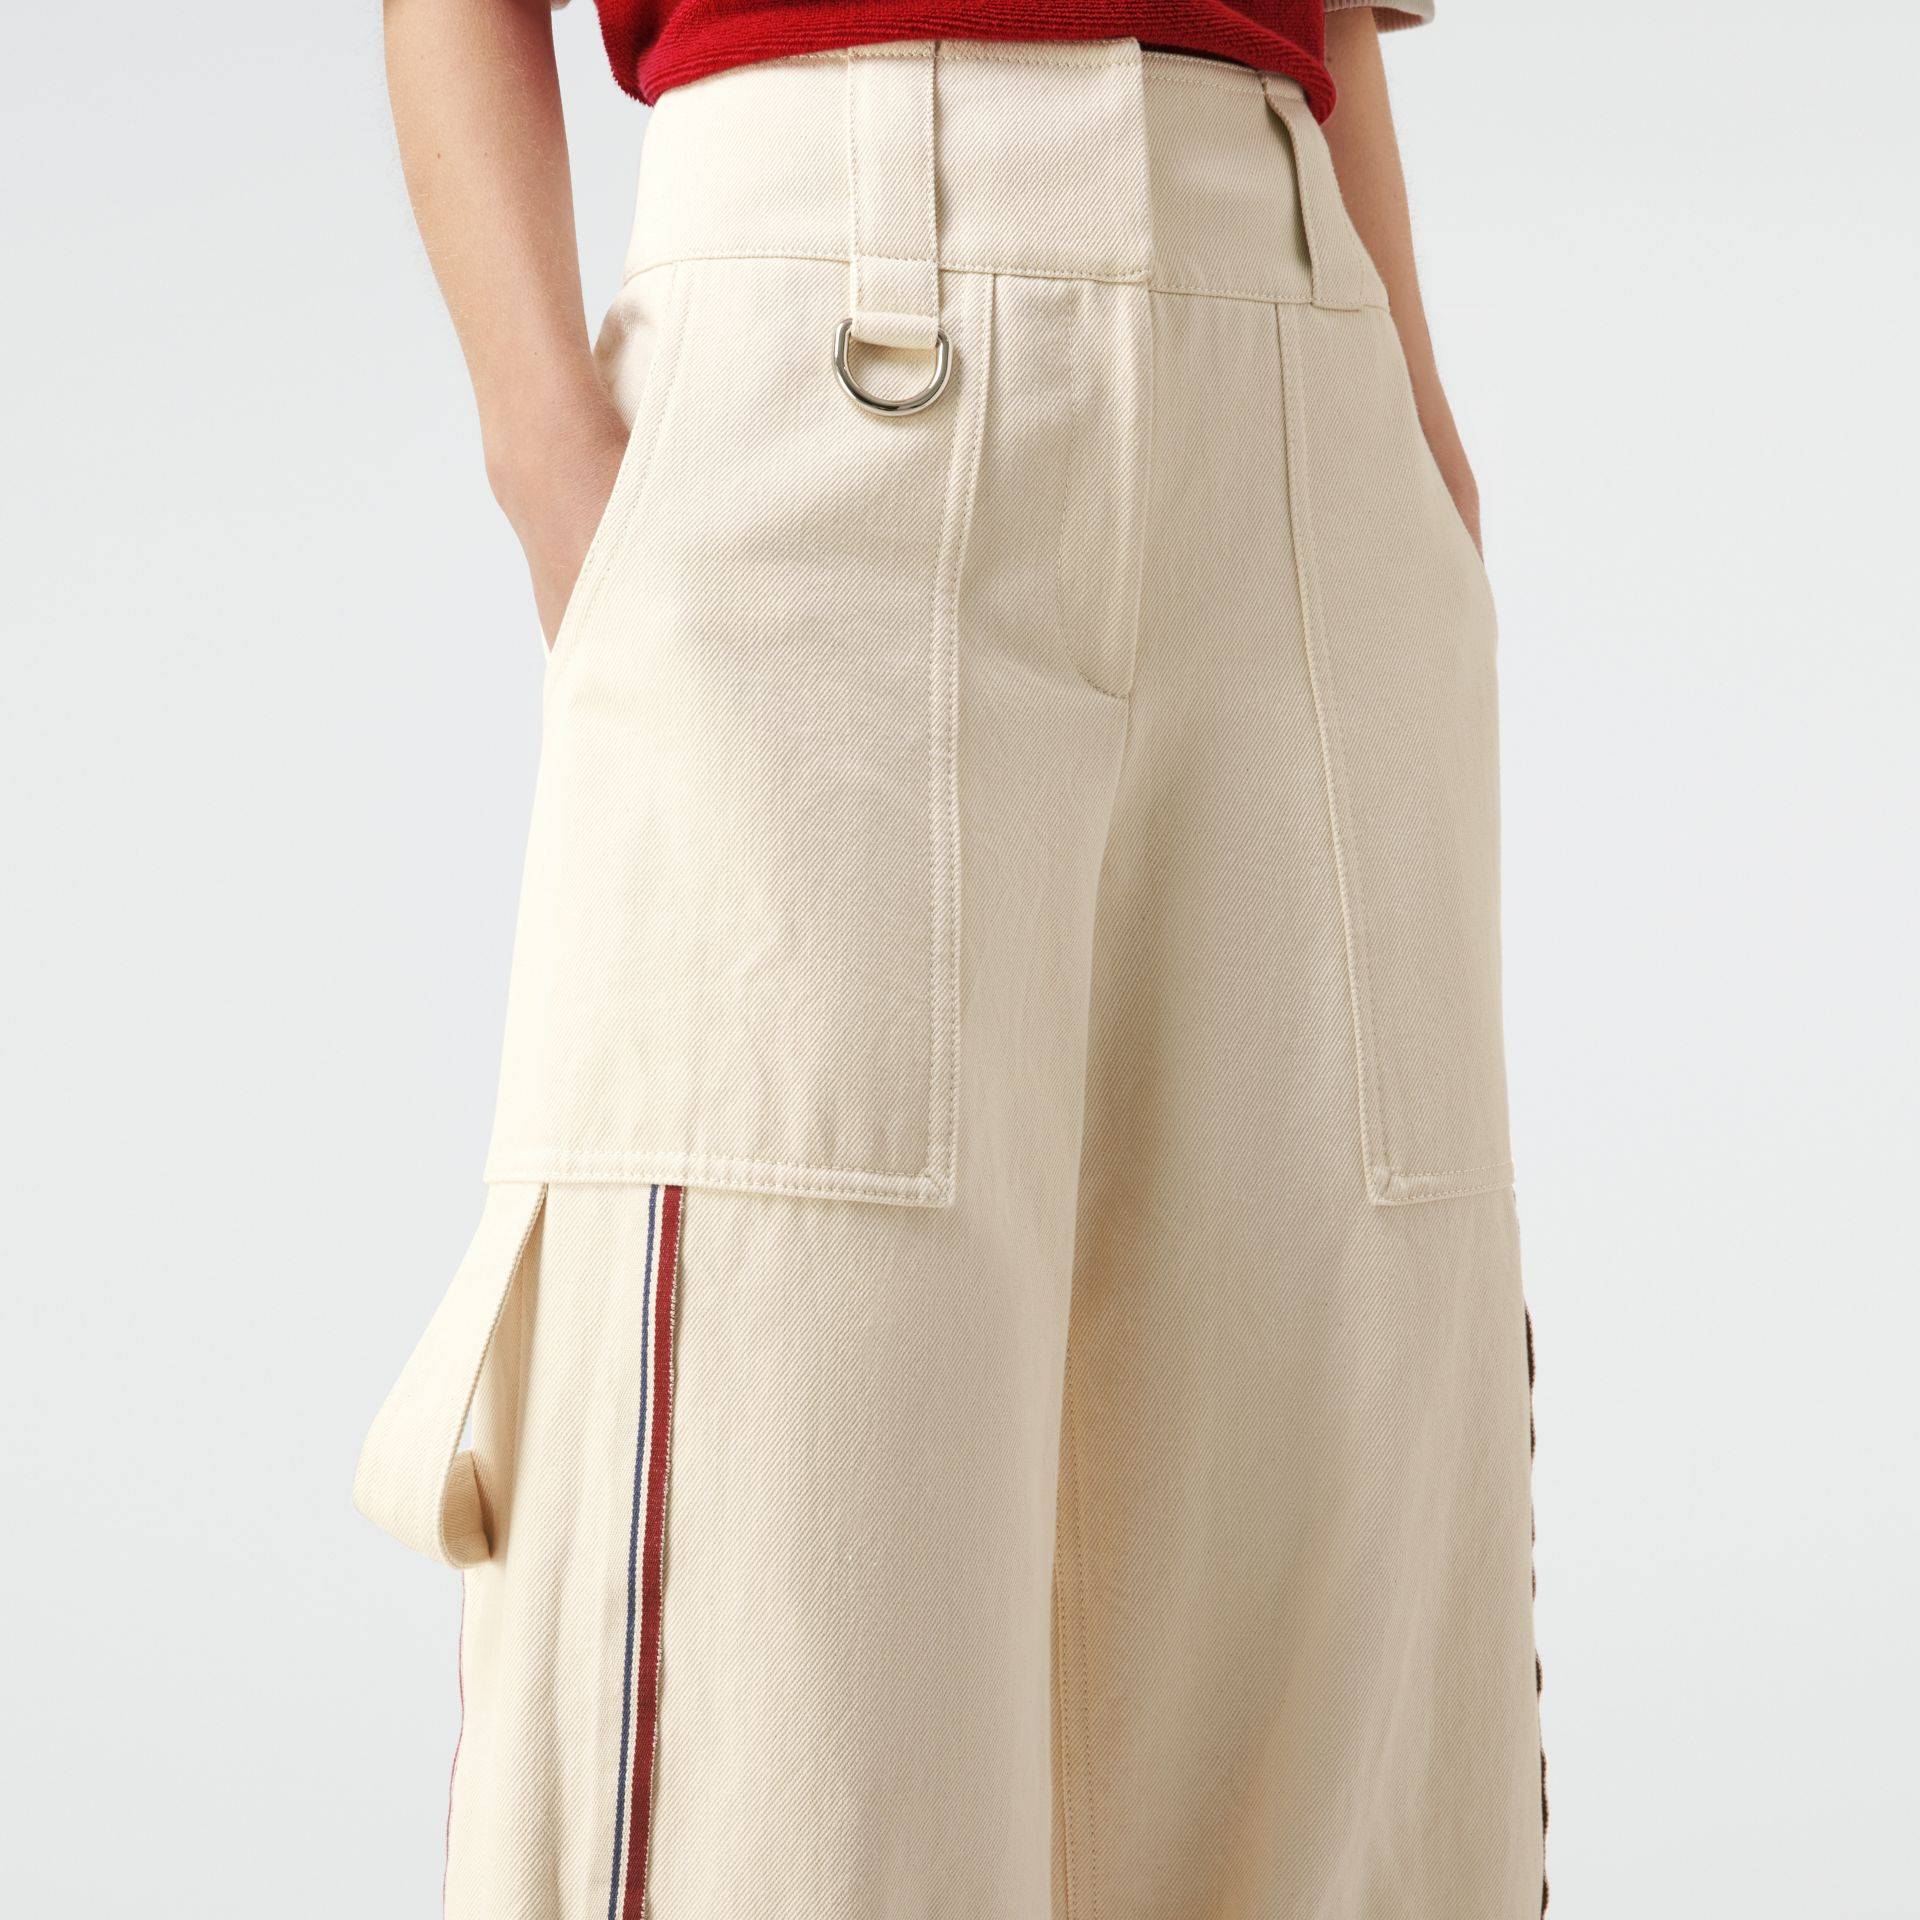 Pantalon ample 7/8 en coton à rayures (Blanc Naturel) - Femme | Burberry Canada - photo de la galerie 1